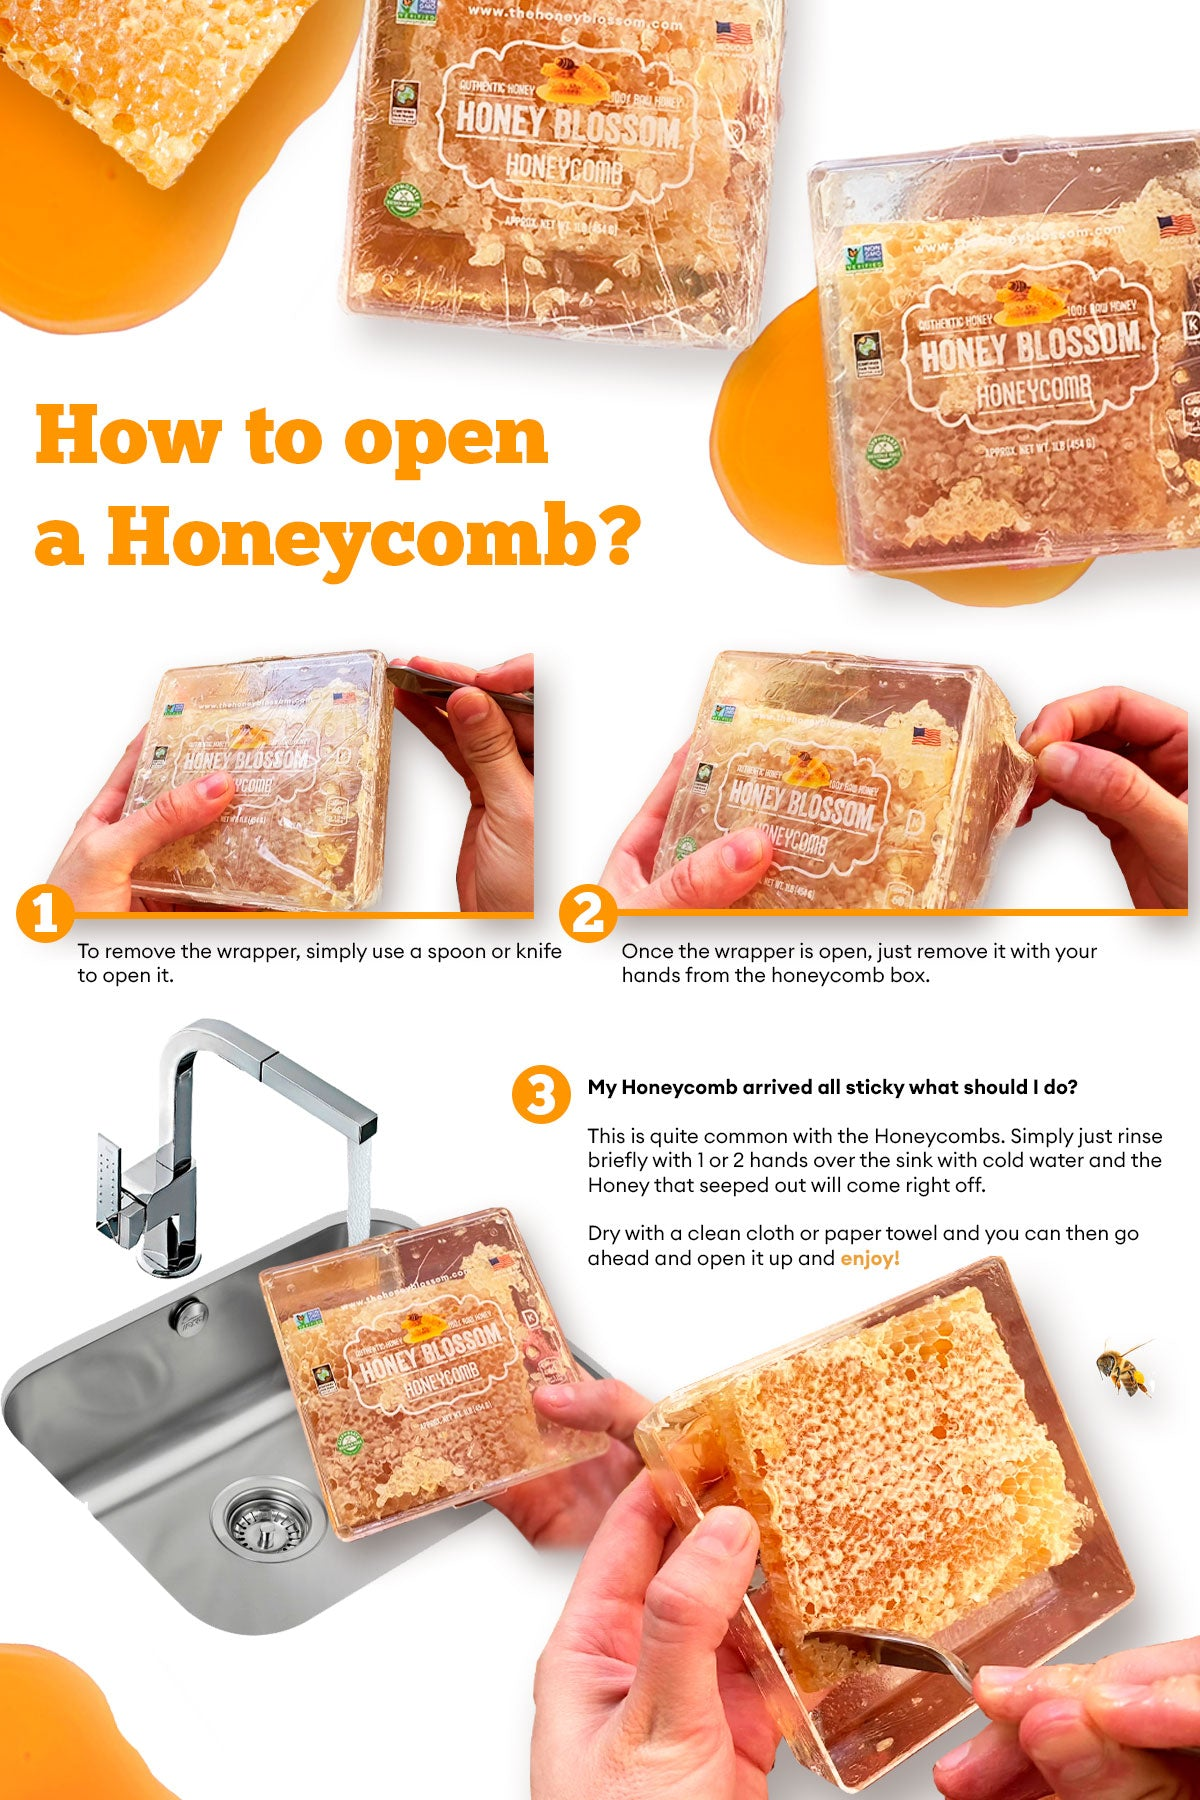 Image showing the steps on how to open a Honey Blossom honeycomb.